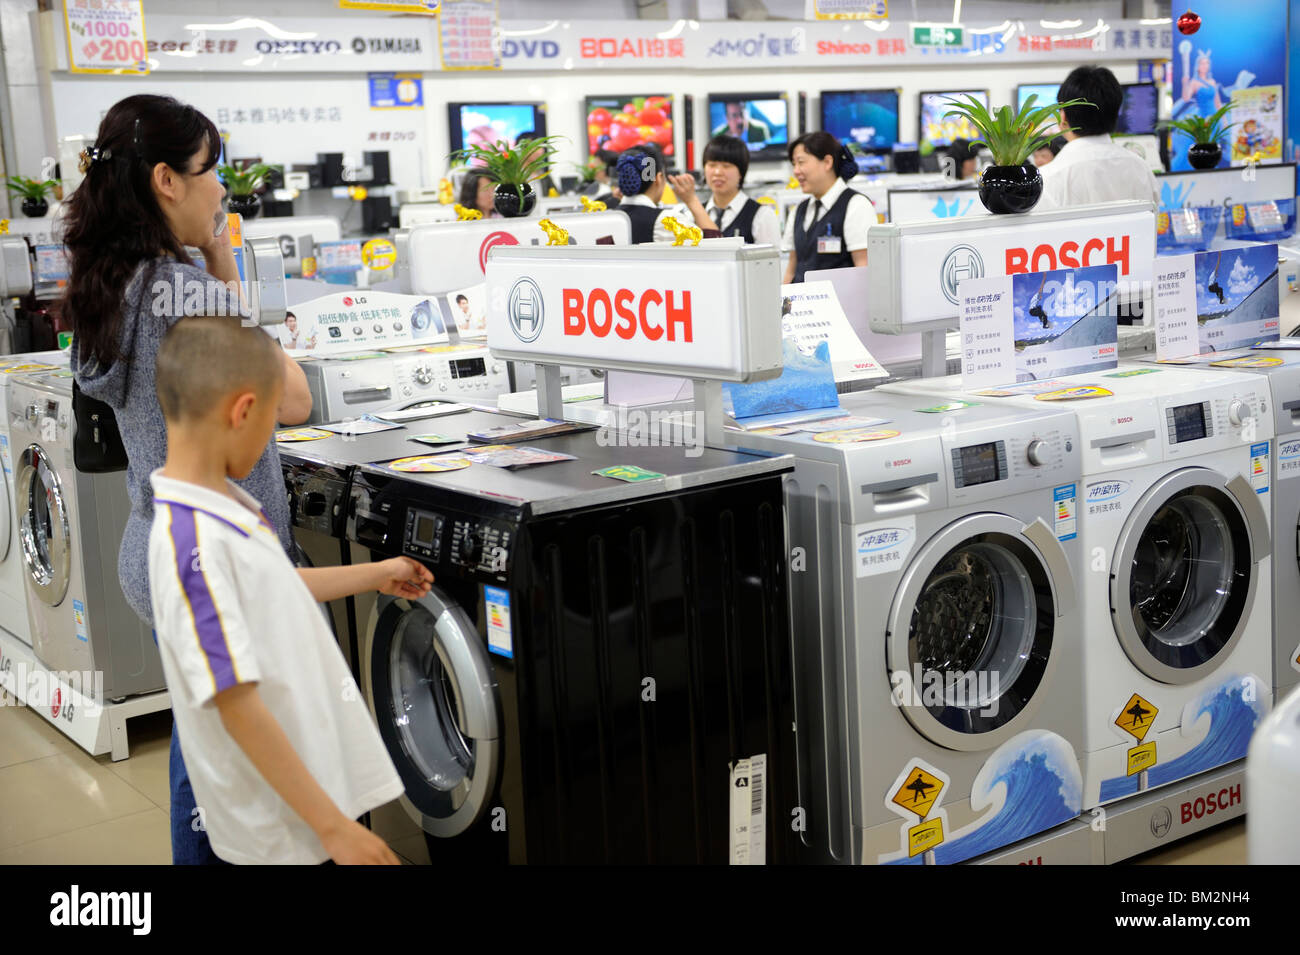 Les lave-linge Bosch à un magasin suning appliance co., à Beijing, en Chine. 16-mai-2010 Photo Stock